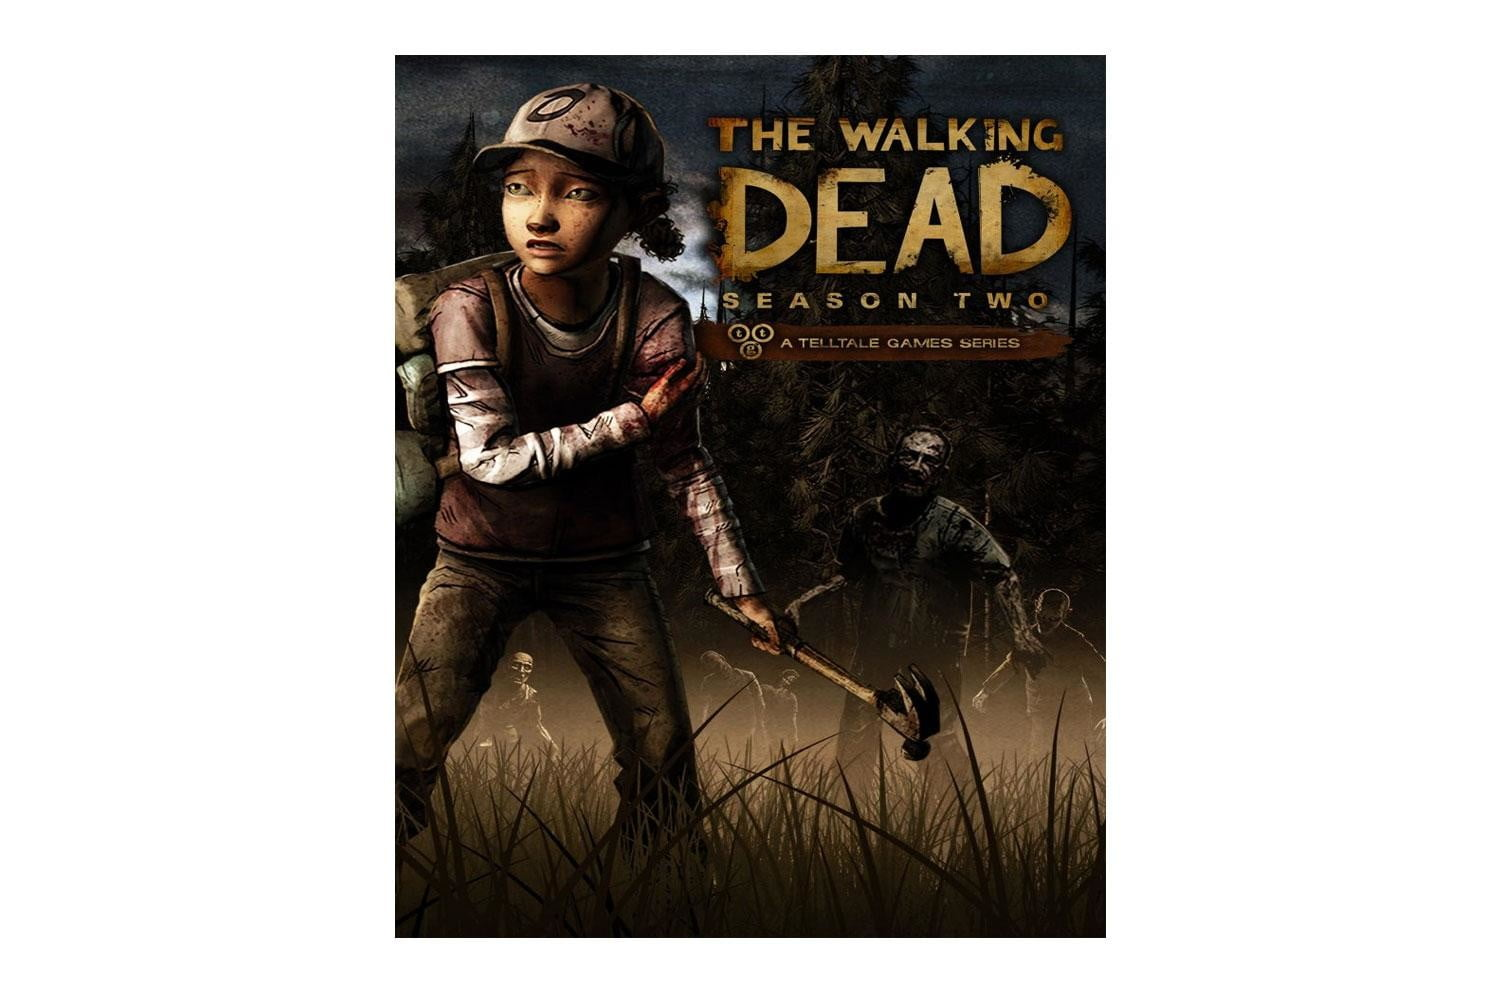 The-Walking-Dead-game-season-2-cover-art